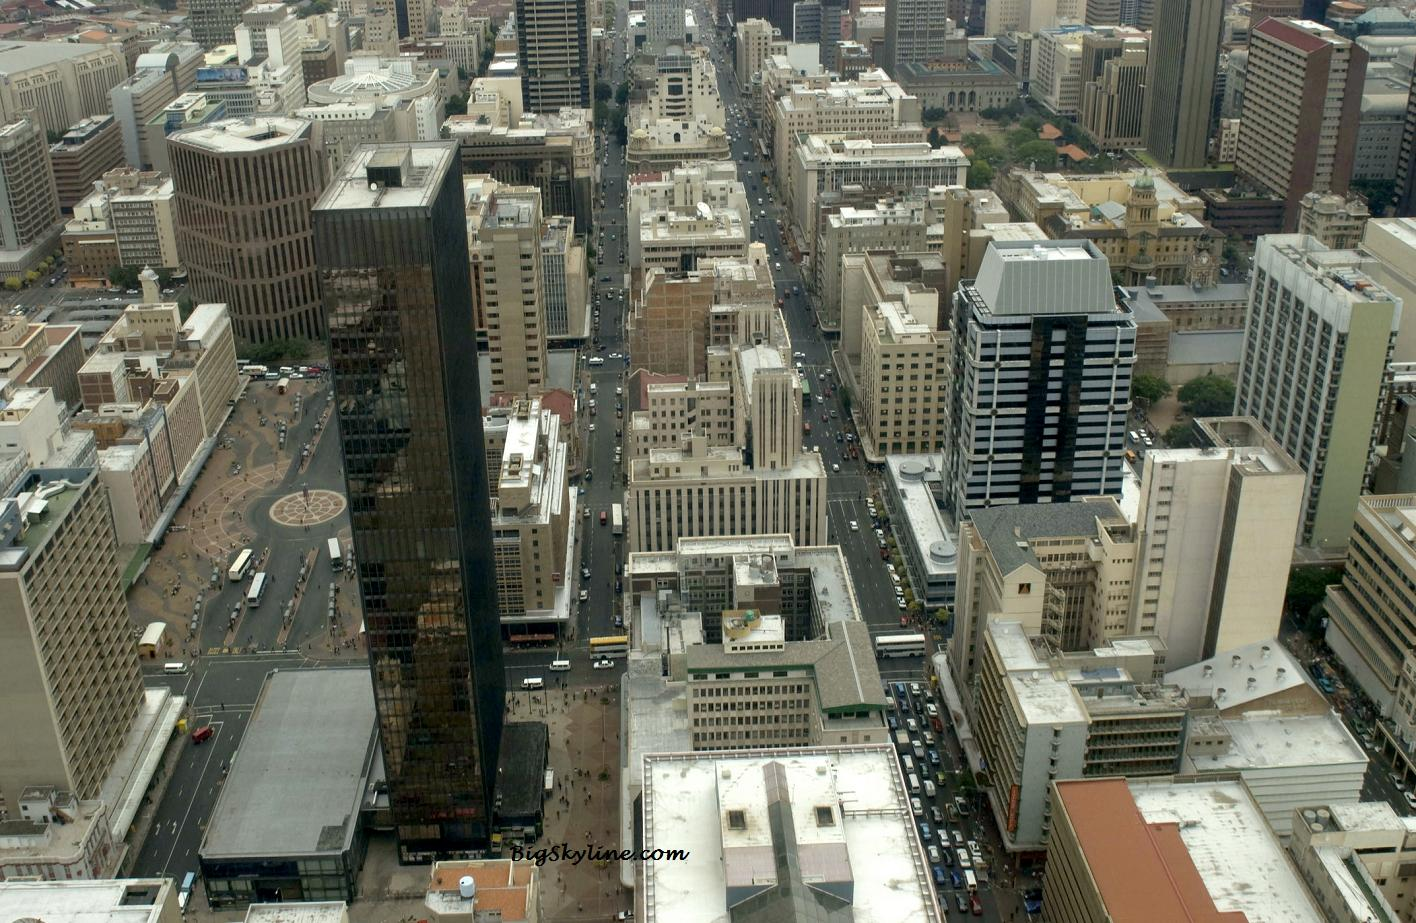 Johannesburg's cityscape in South Africa